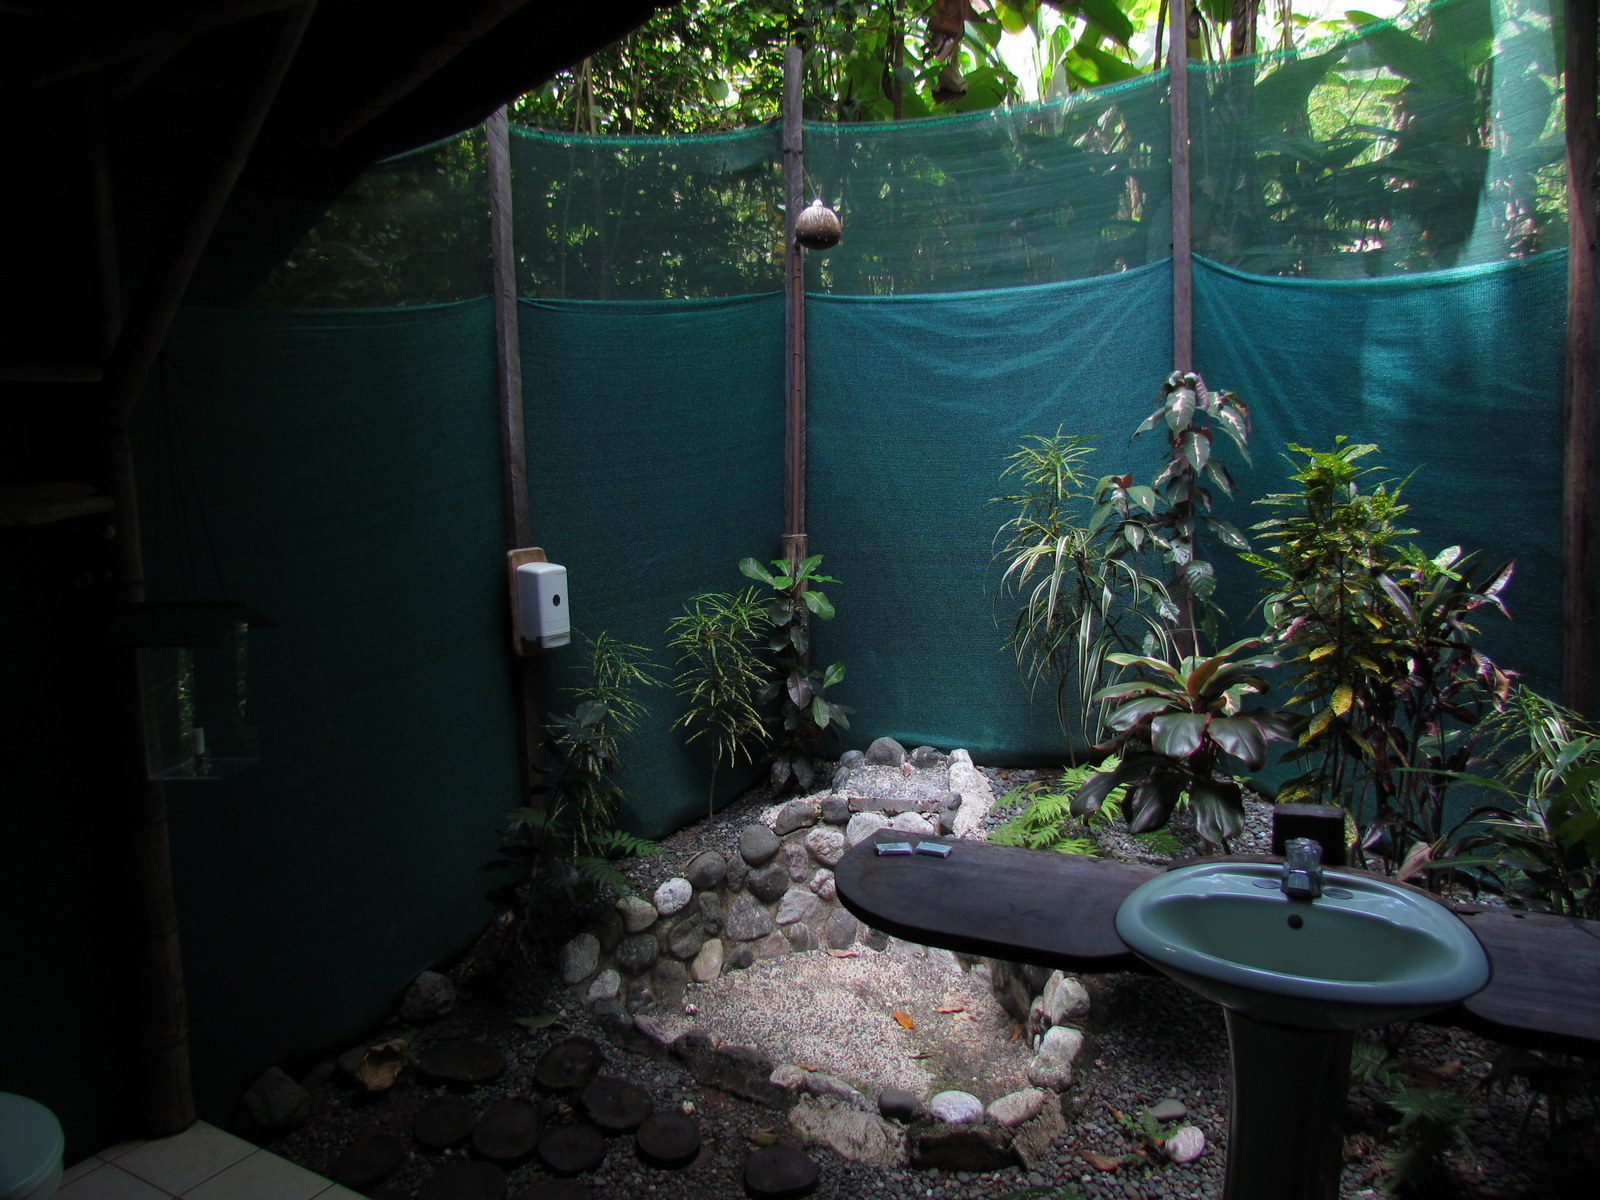 The Costa Rica Bathroom Experience